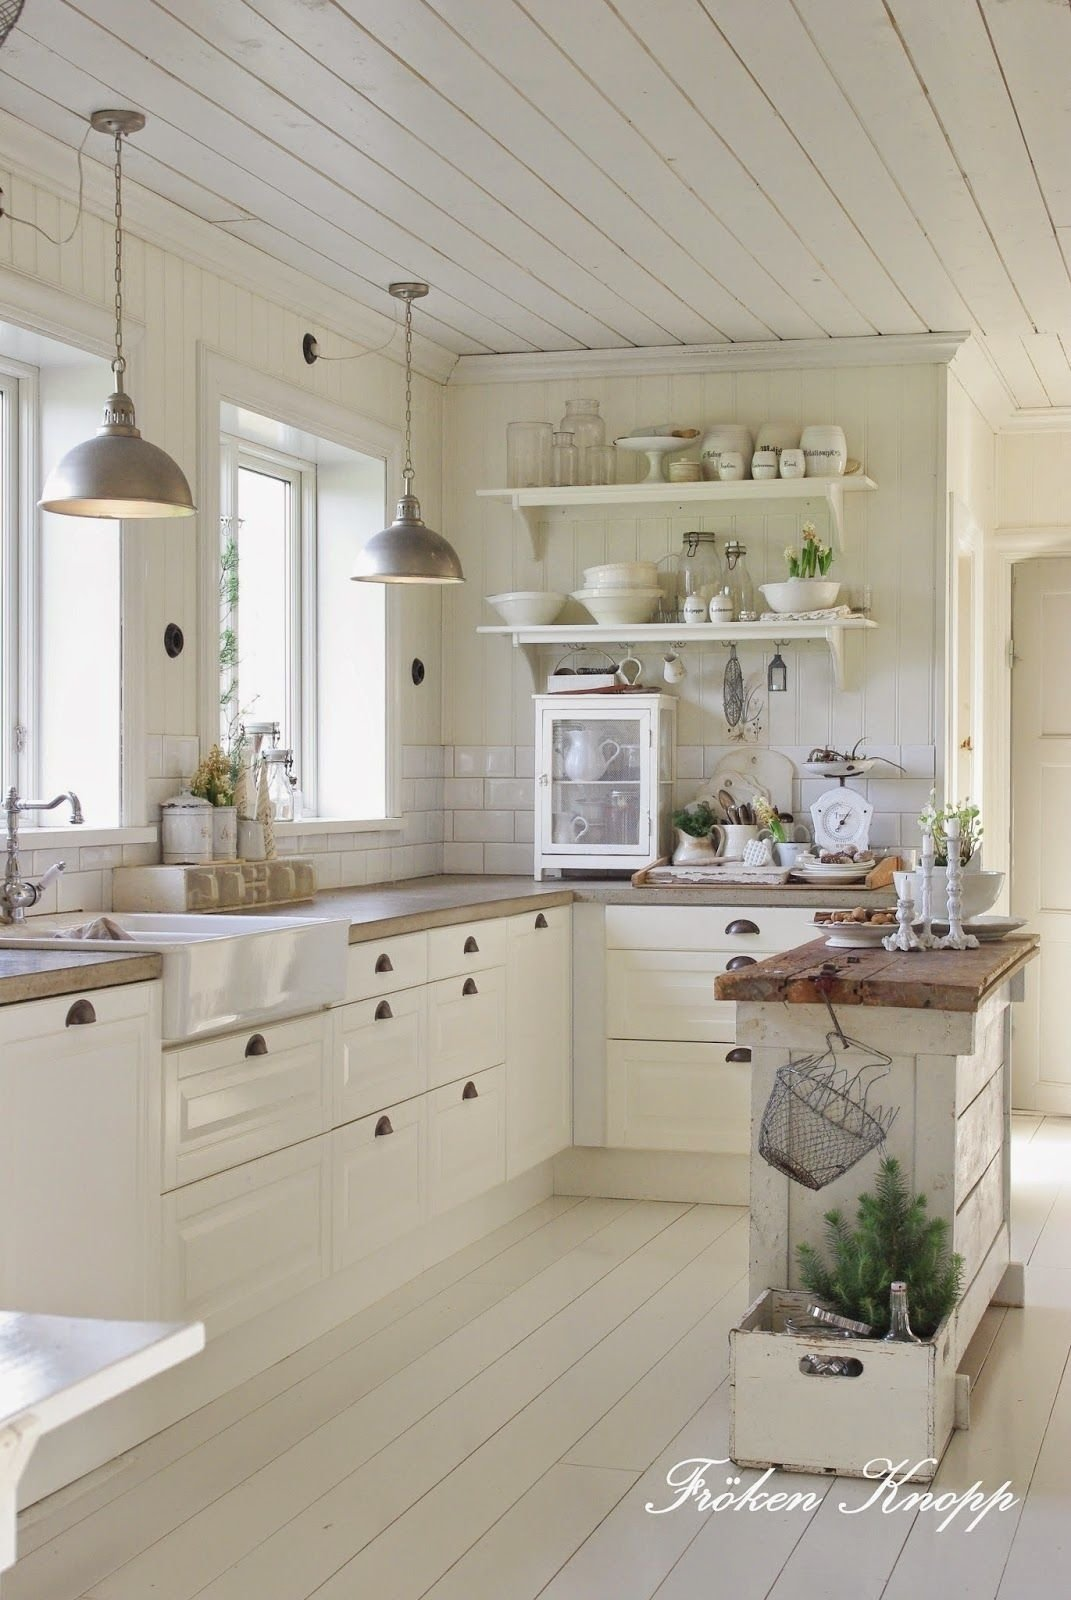 10 Gorgeous Kitchen Ideas With White Cabinets love this entire kitchen farm house sink open shelving white 2020